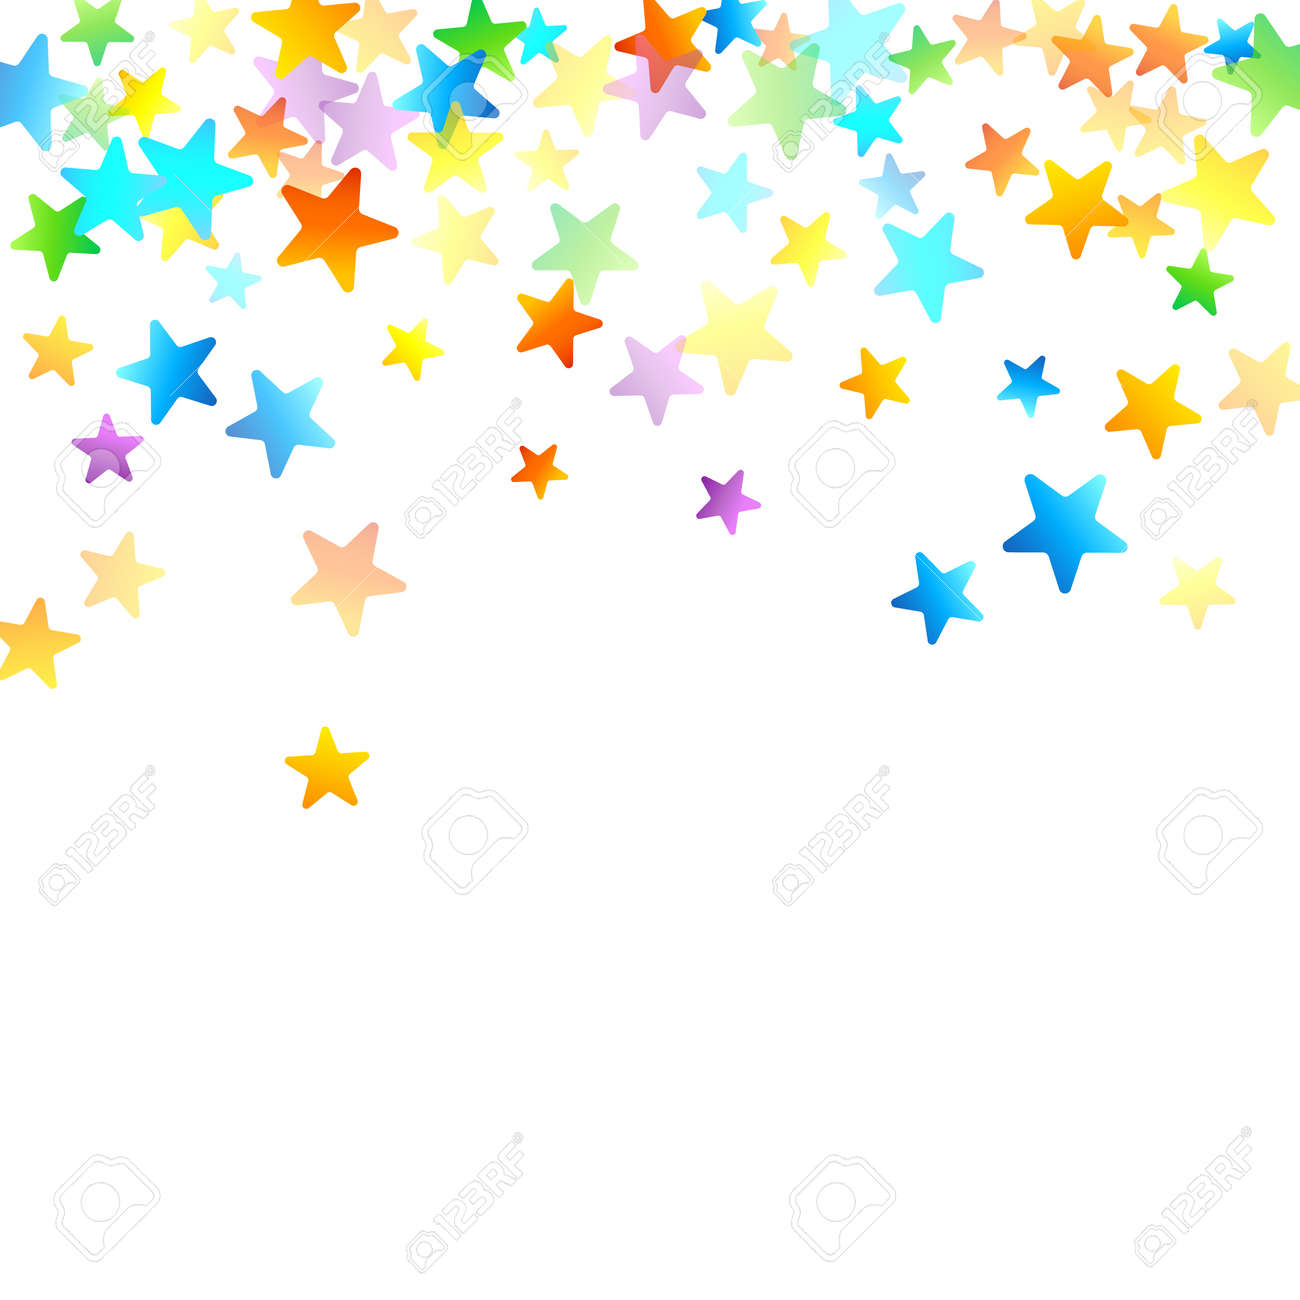 Rainbow Festive Confetti. Carnival Template. Colorful Star Falling. Beautiful Holidays Party. Little Tiny Multicolor Sprockets on White Background. Bright Vector Illustration. - 164155915